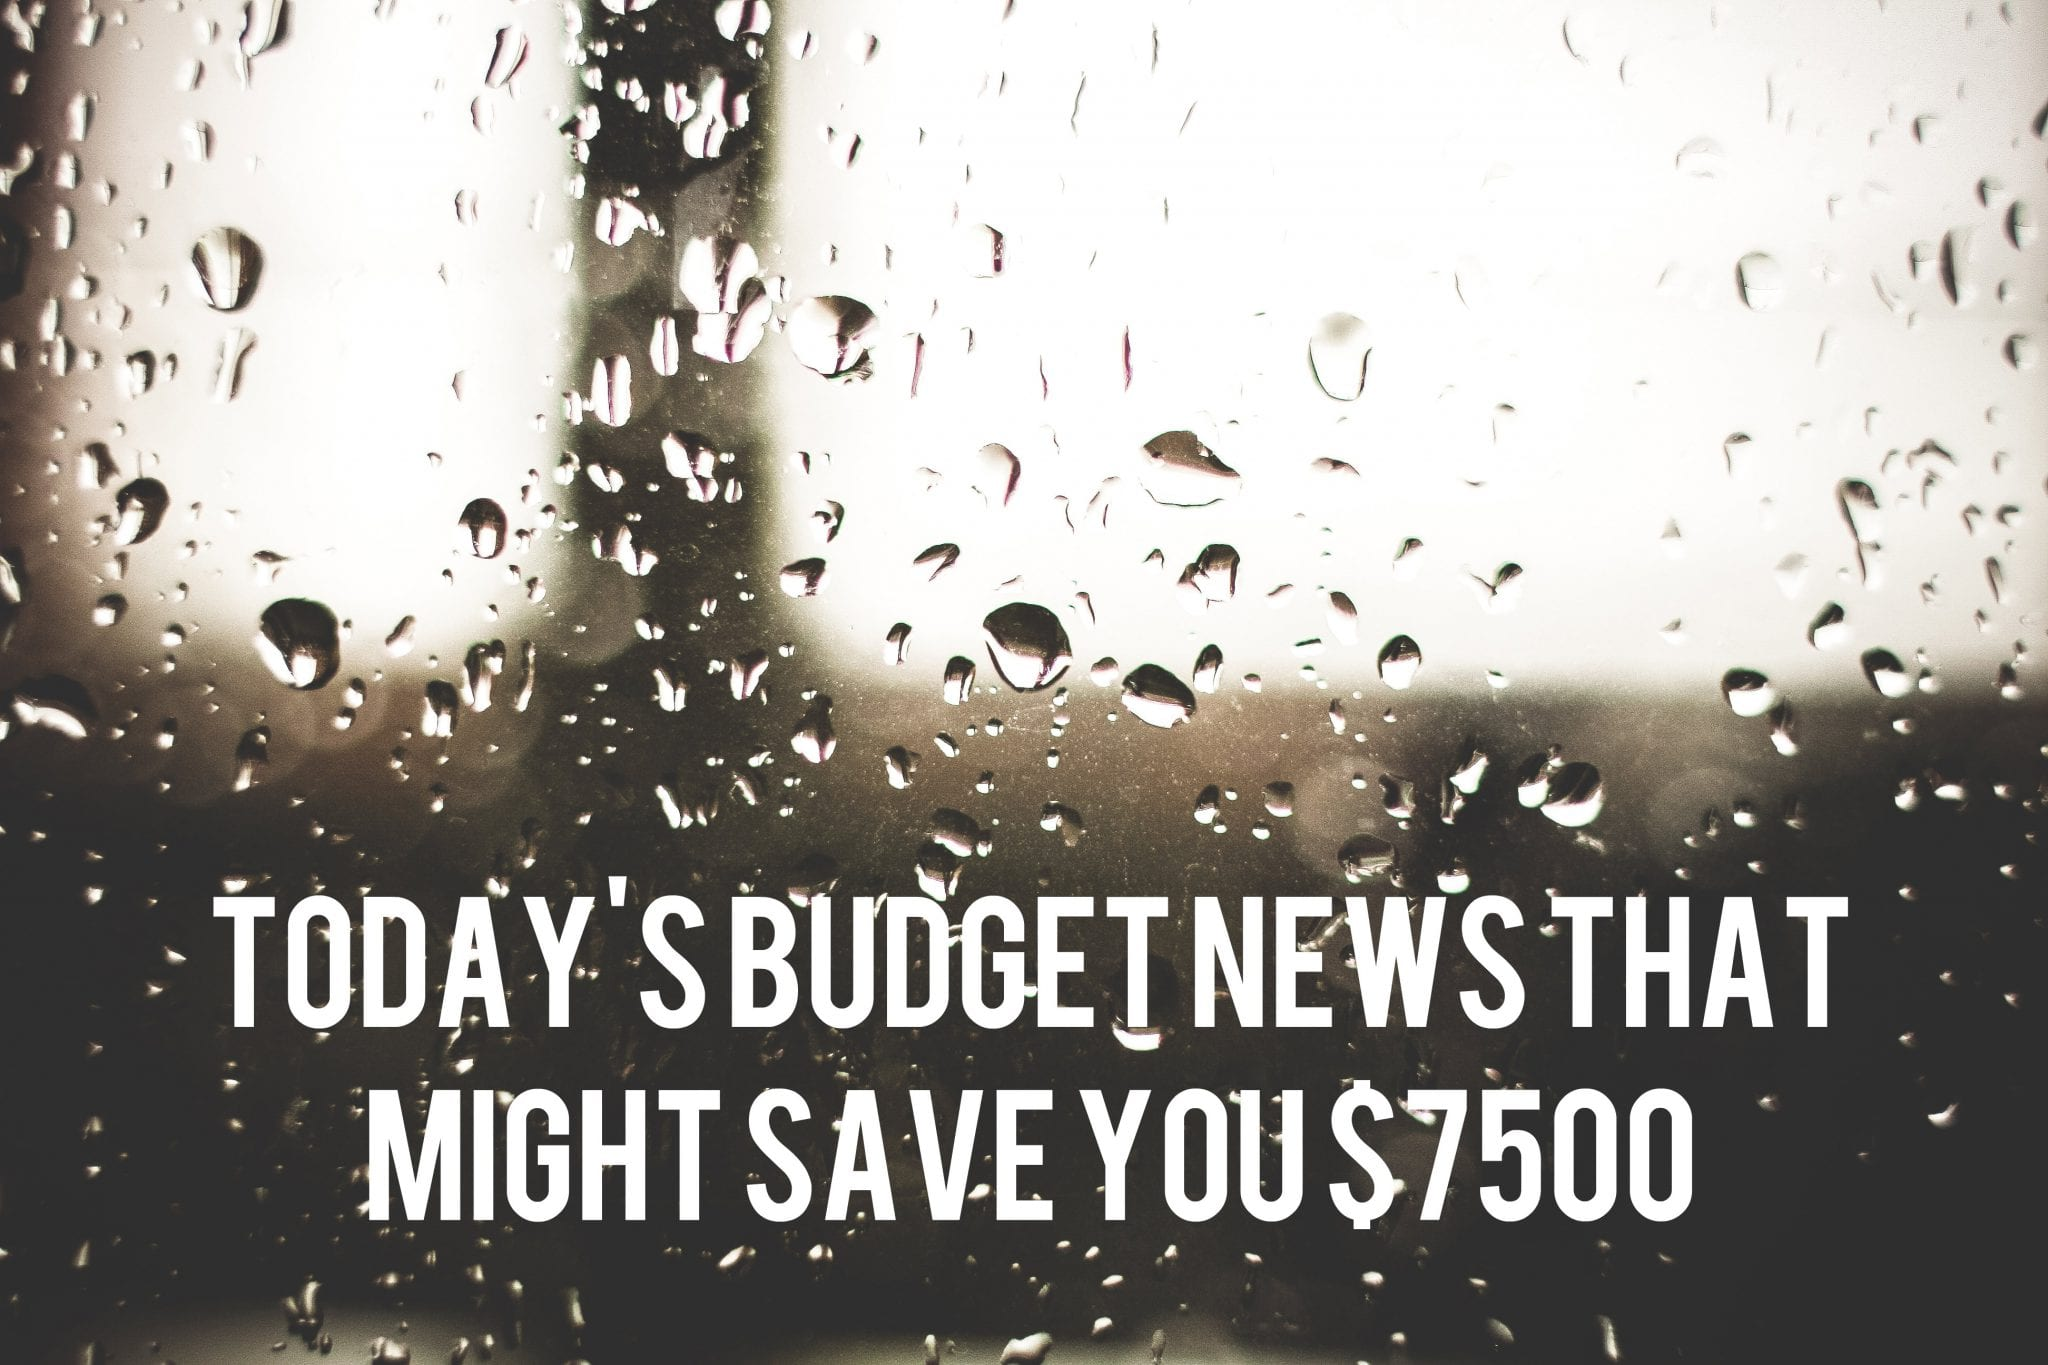 2014 BC budget savings